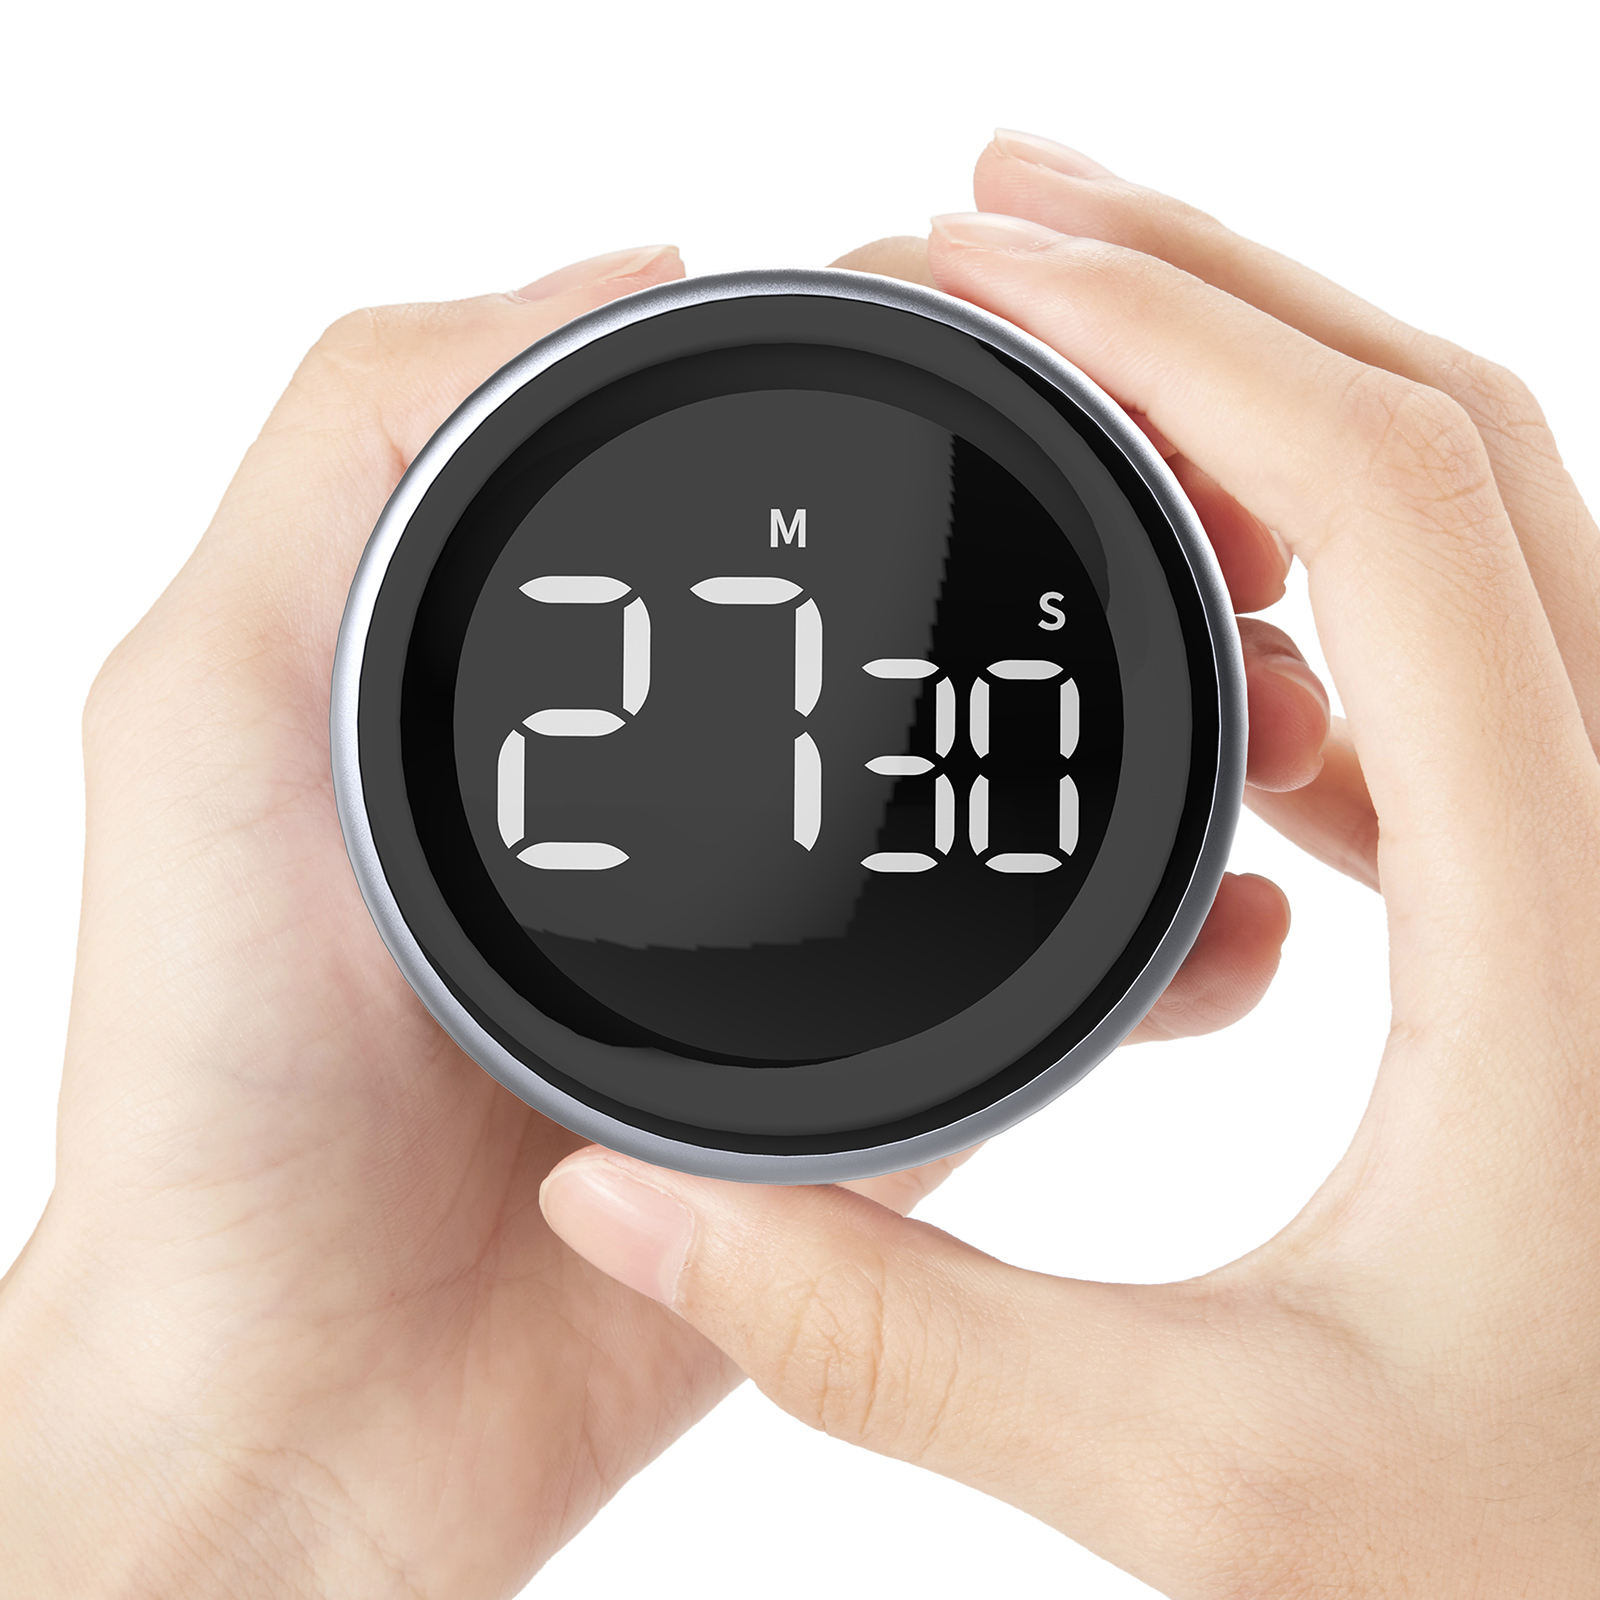 NEW Arrival HAPTIME Knob Digital Kitchen Countdown Timer Magnetic LCD Large Display Countdown Timer